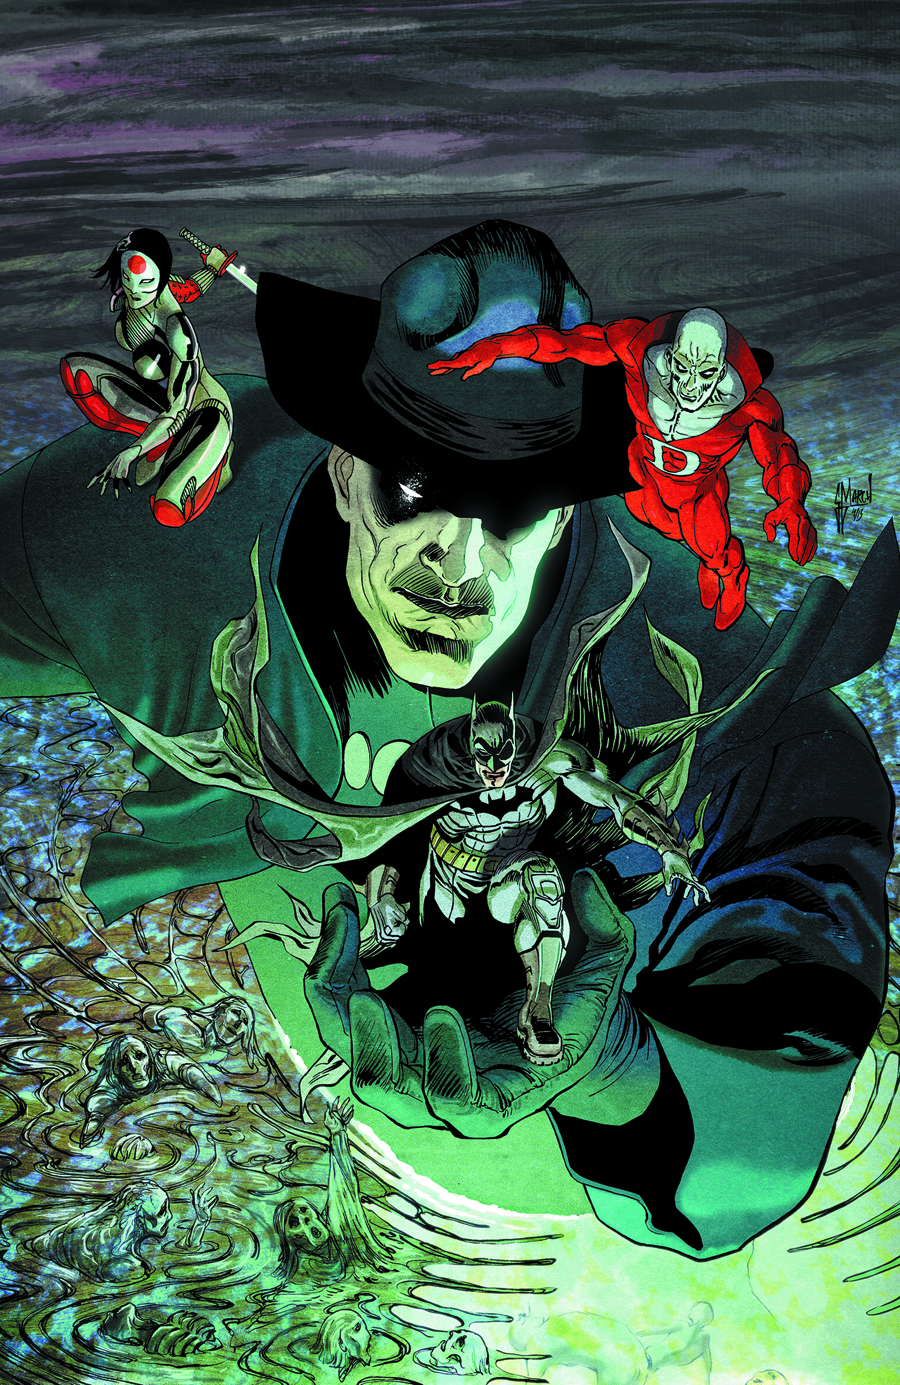 TRINITY OF SIN THE PHANTOM STRANGER #11